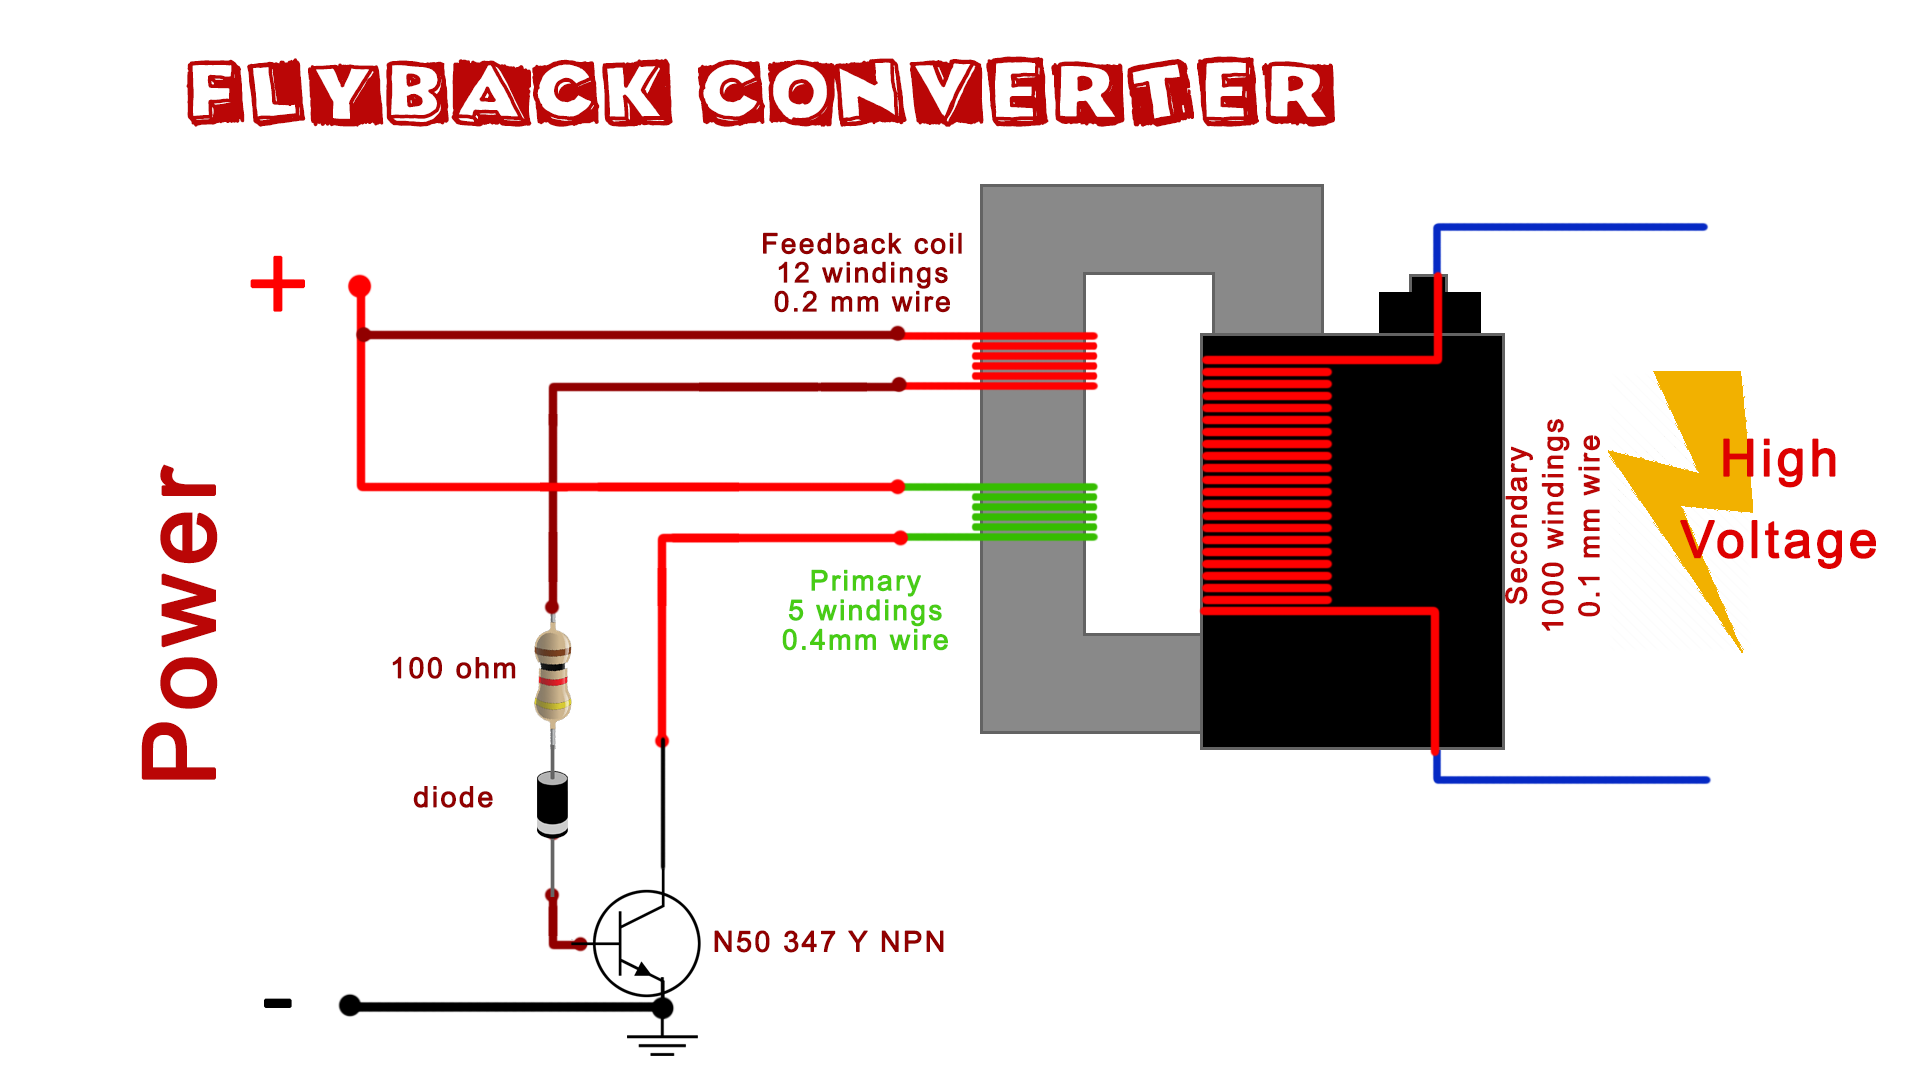 flyback transformer wiring diagram image result for voltage booster circuit with flyback transformer  flyback transformer